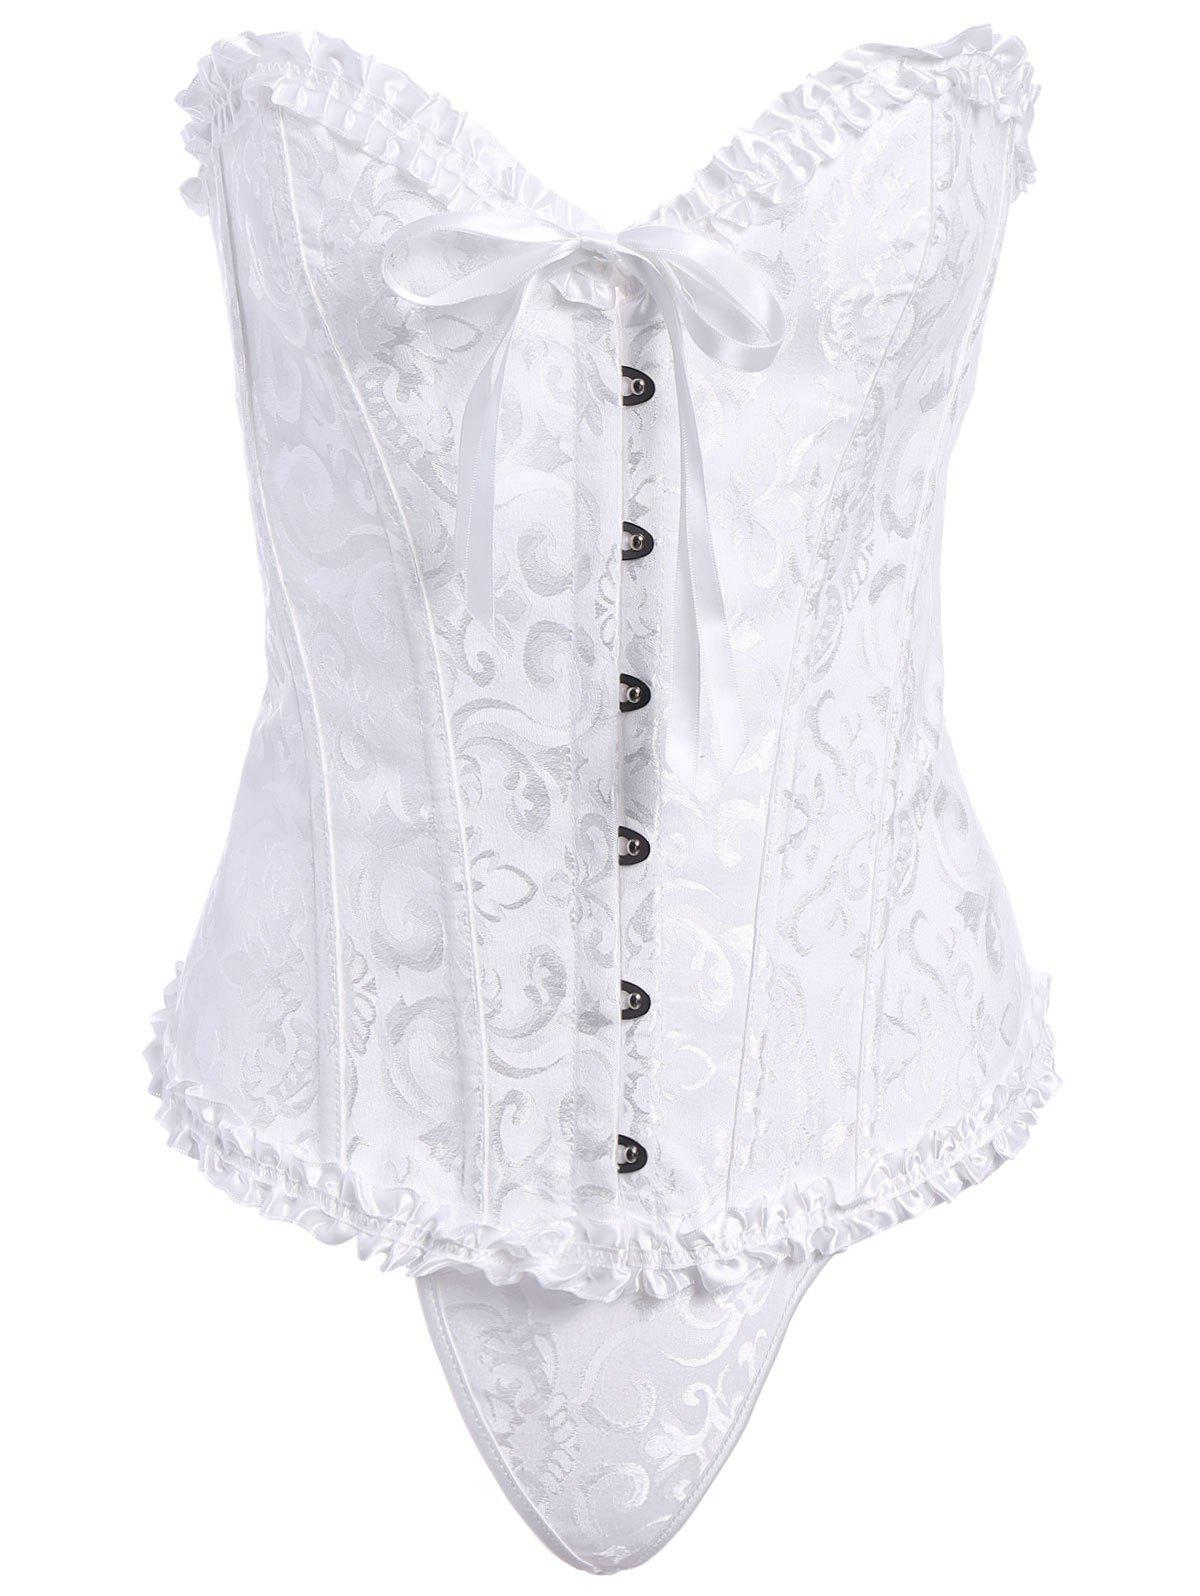 Charming Bowknot Design Lace-Up Corset and Panties Twinset For Women